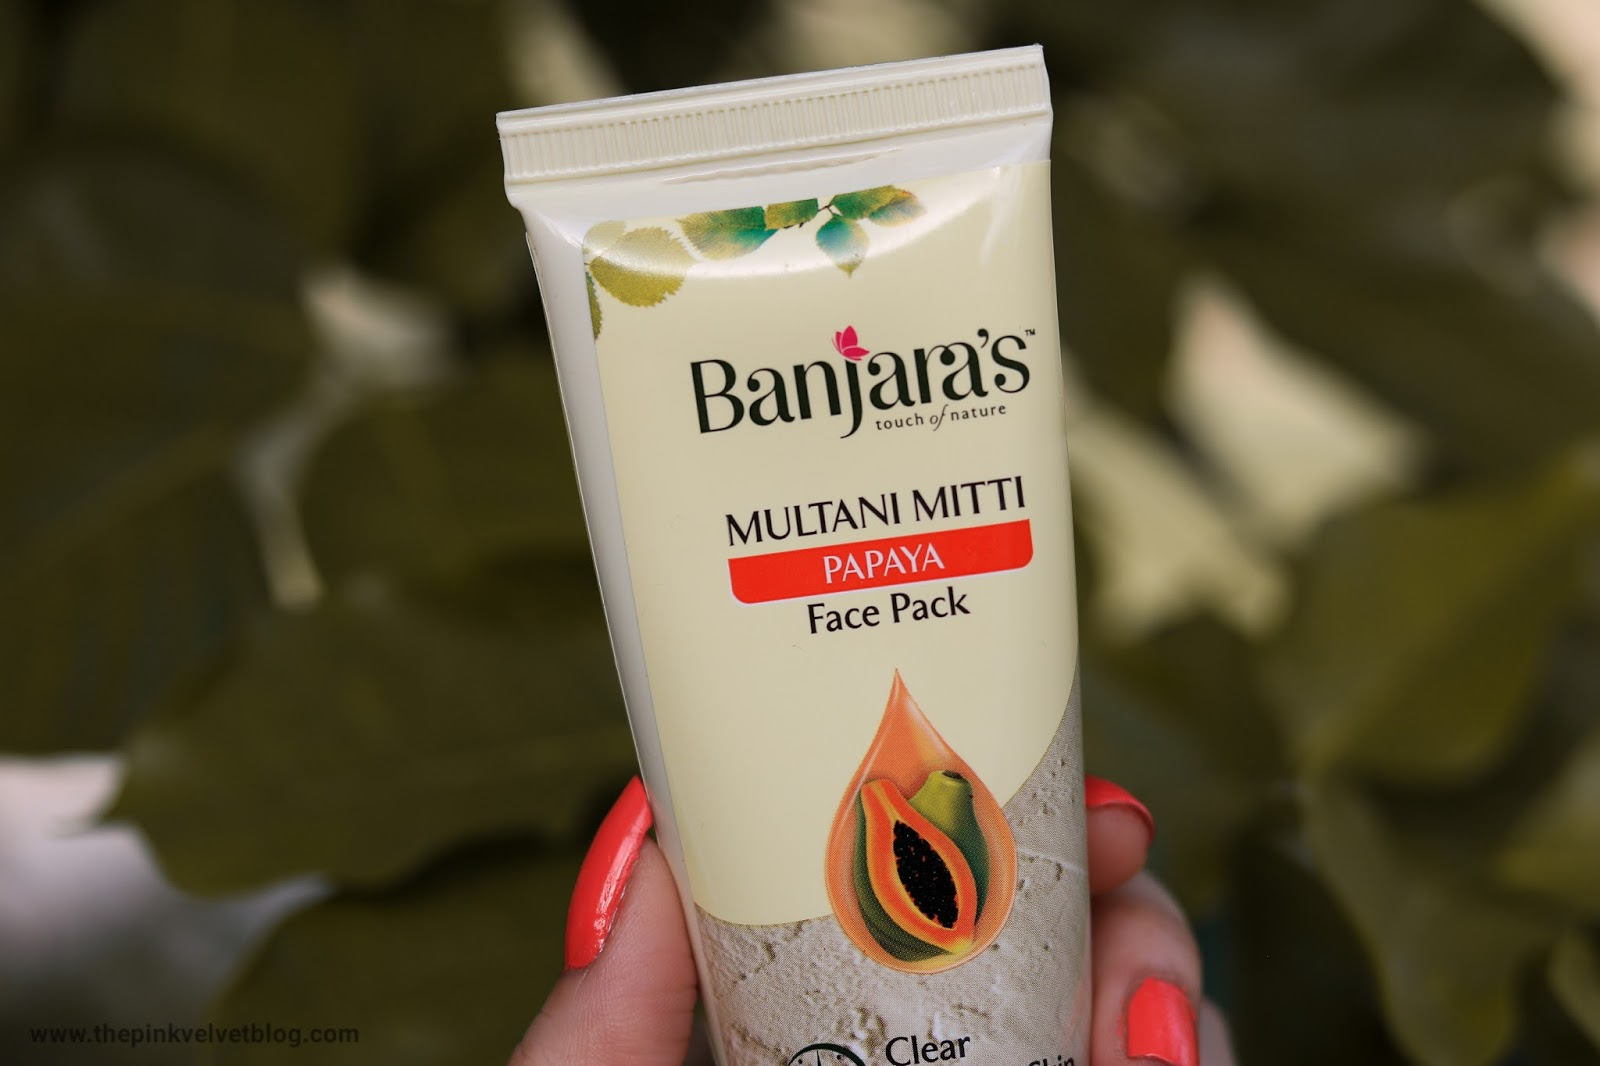 banjara's multani mitti papaya face pack